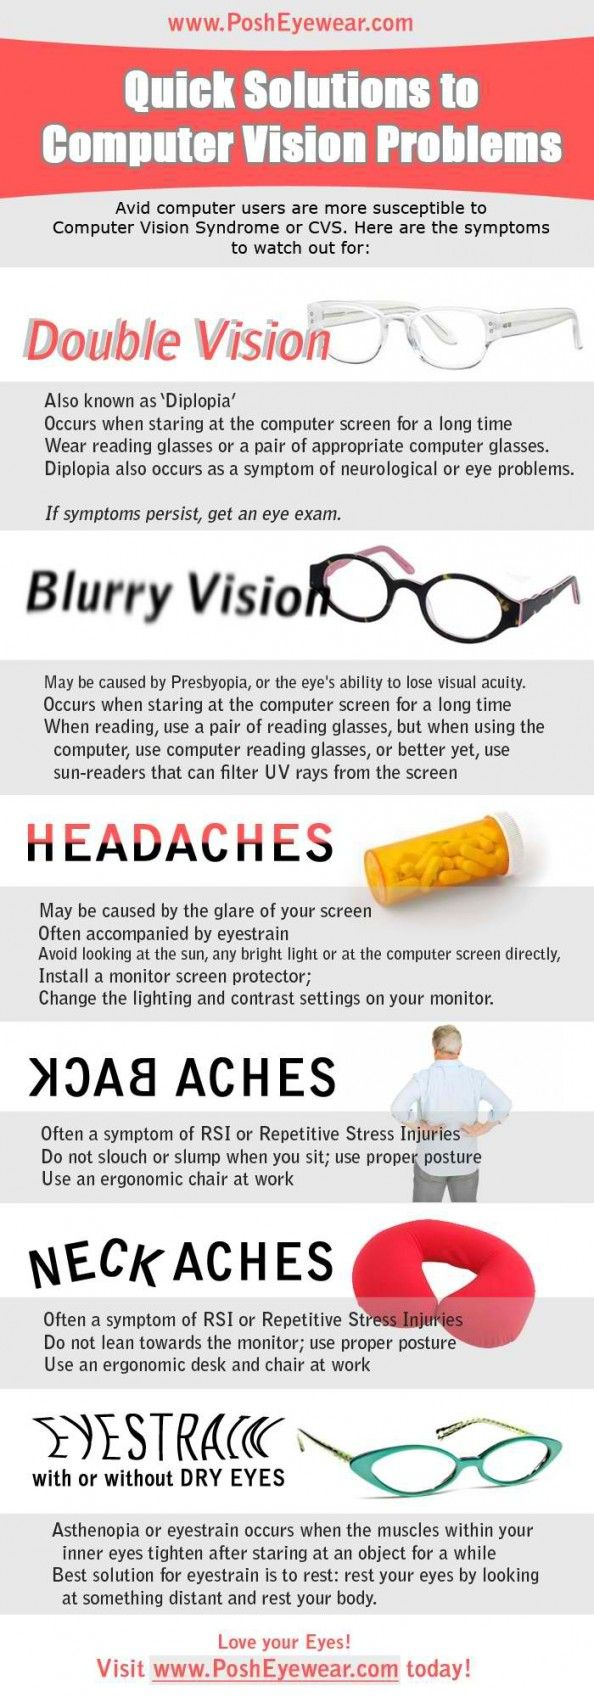 Quick Solutions to Computer Vision Problems Infographic